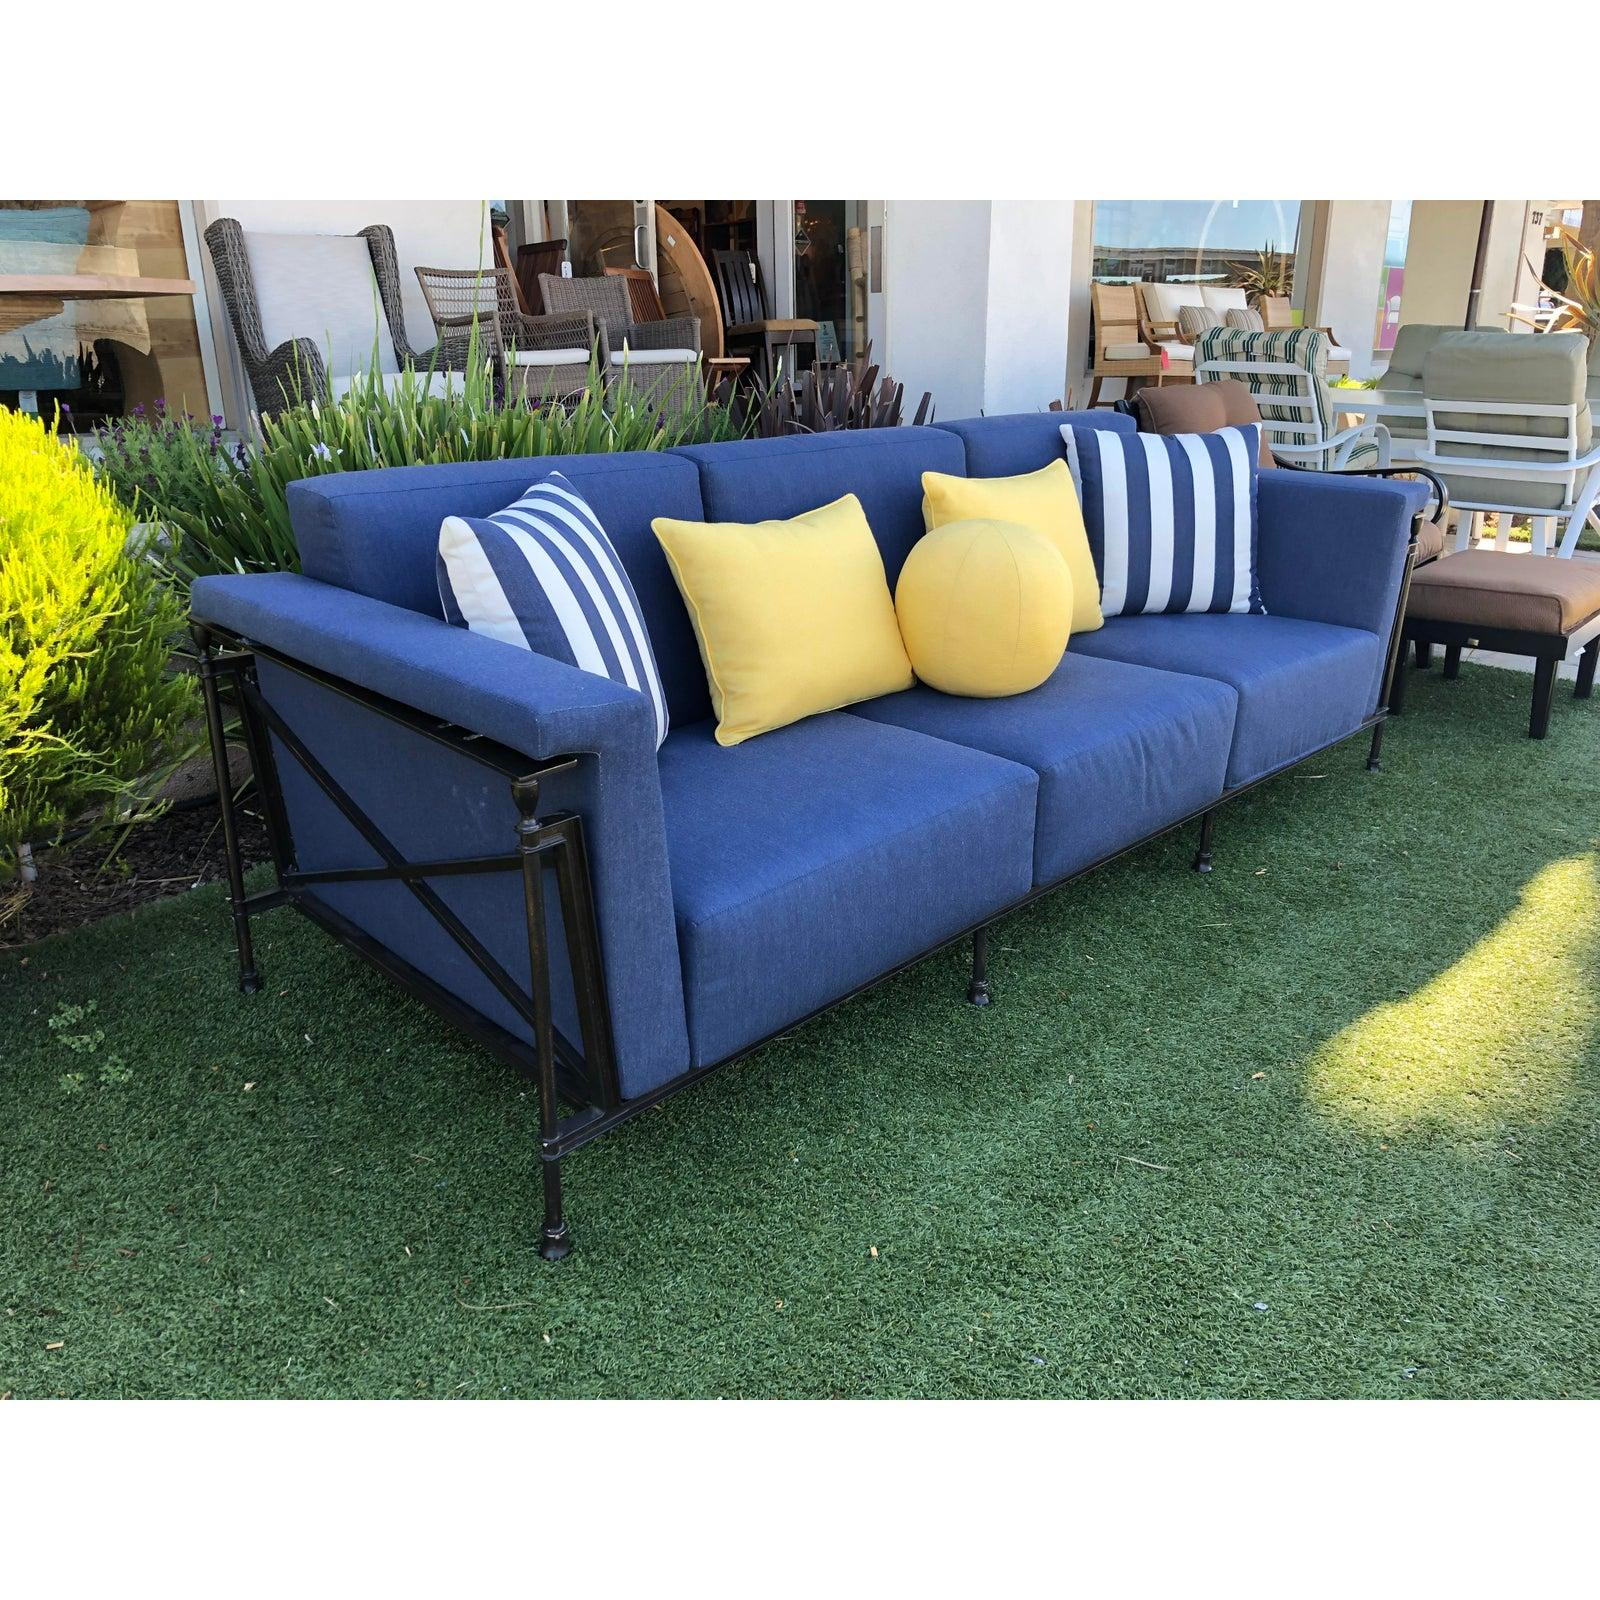 Prime Jerome Outdoor Sofa By Michael Taylor Designs For Sale At Gmtry Best Dining Table And Chair Ideas Images Gmtryco